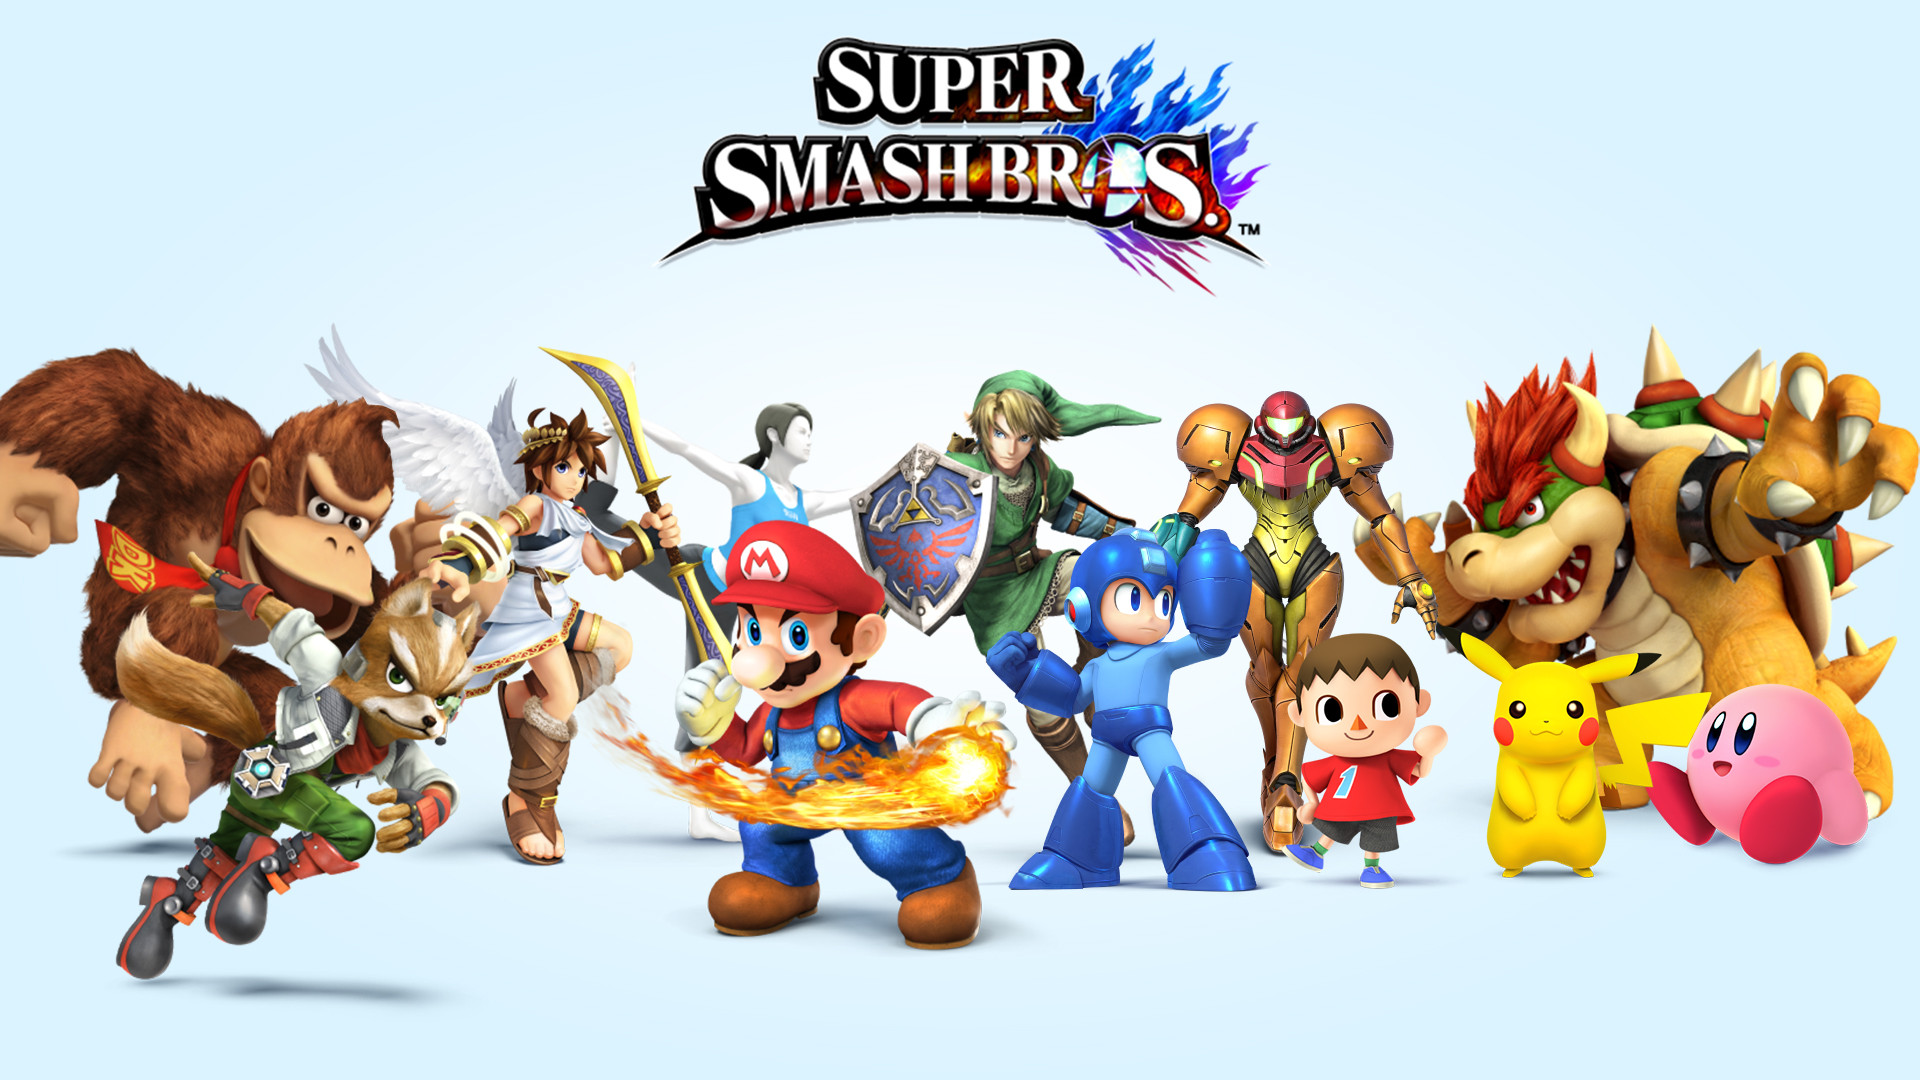 Super Smash Bros. 4 Slated For April 8th By Gamestop?